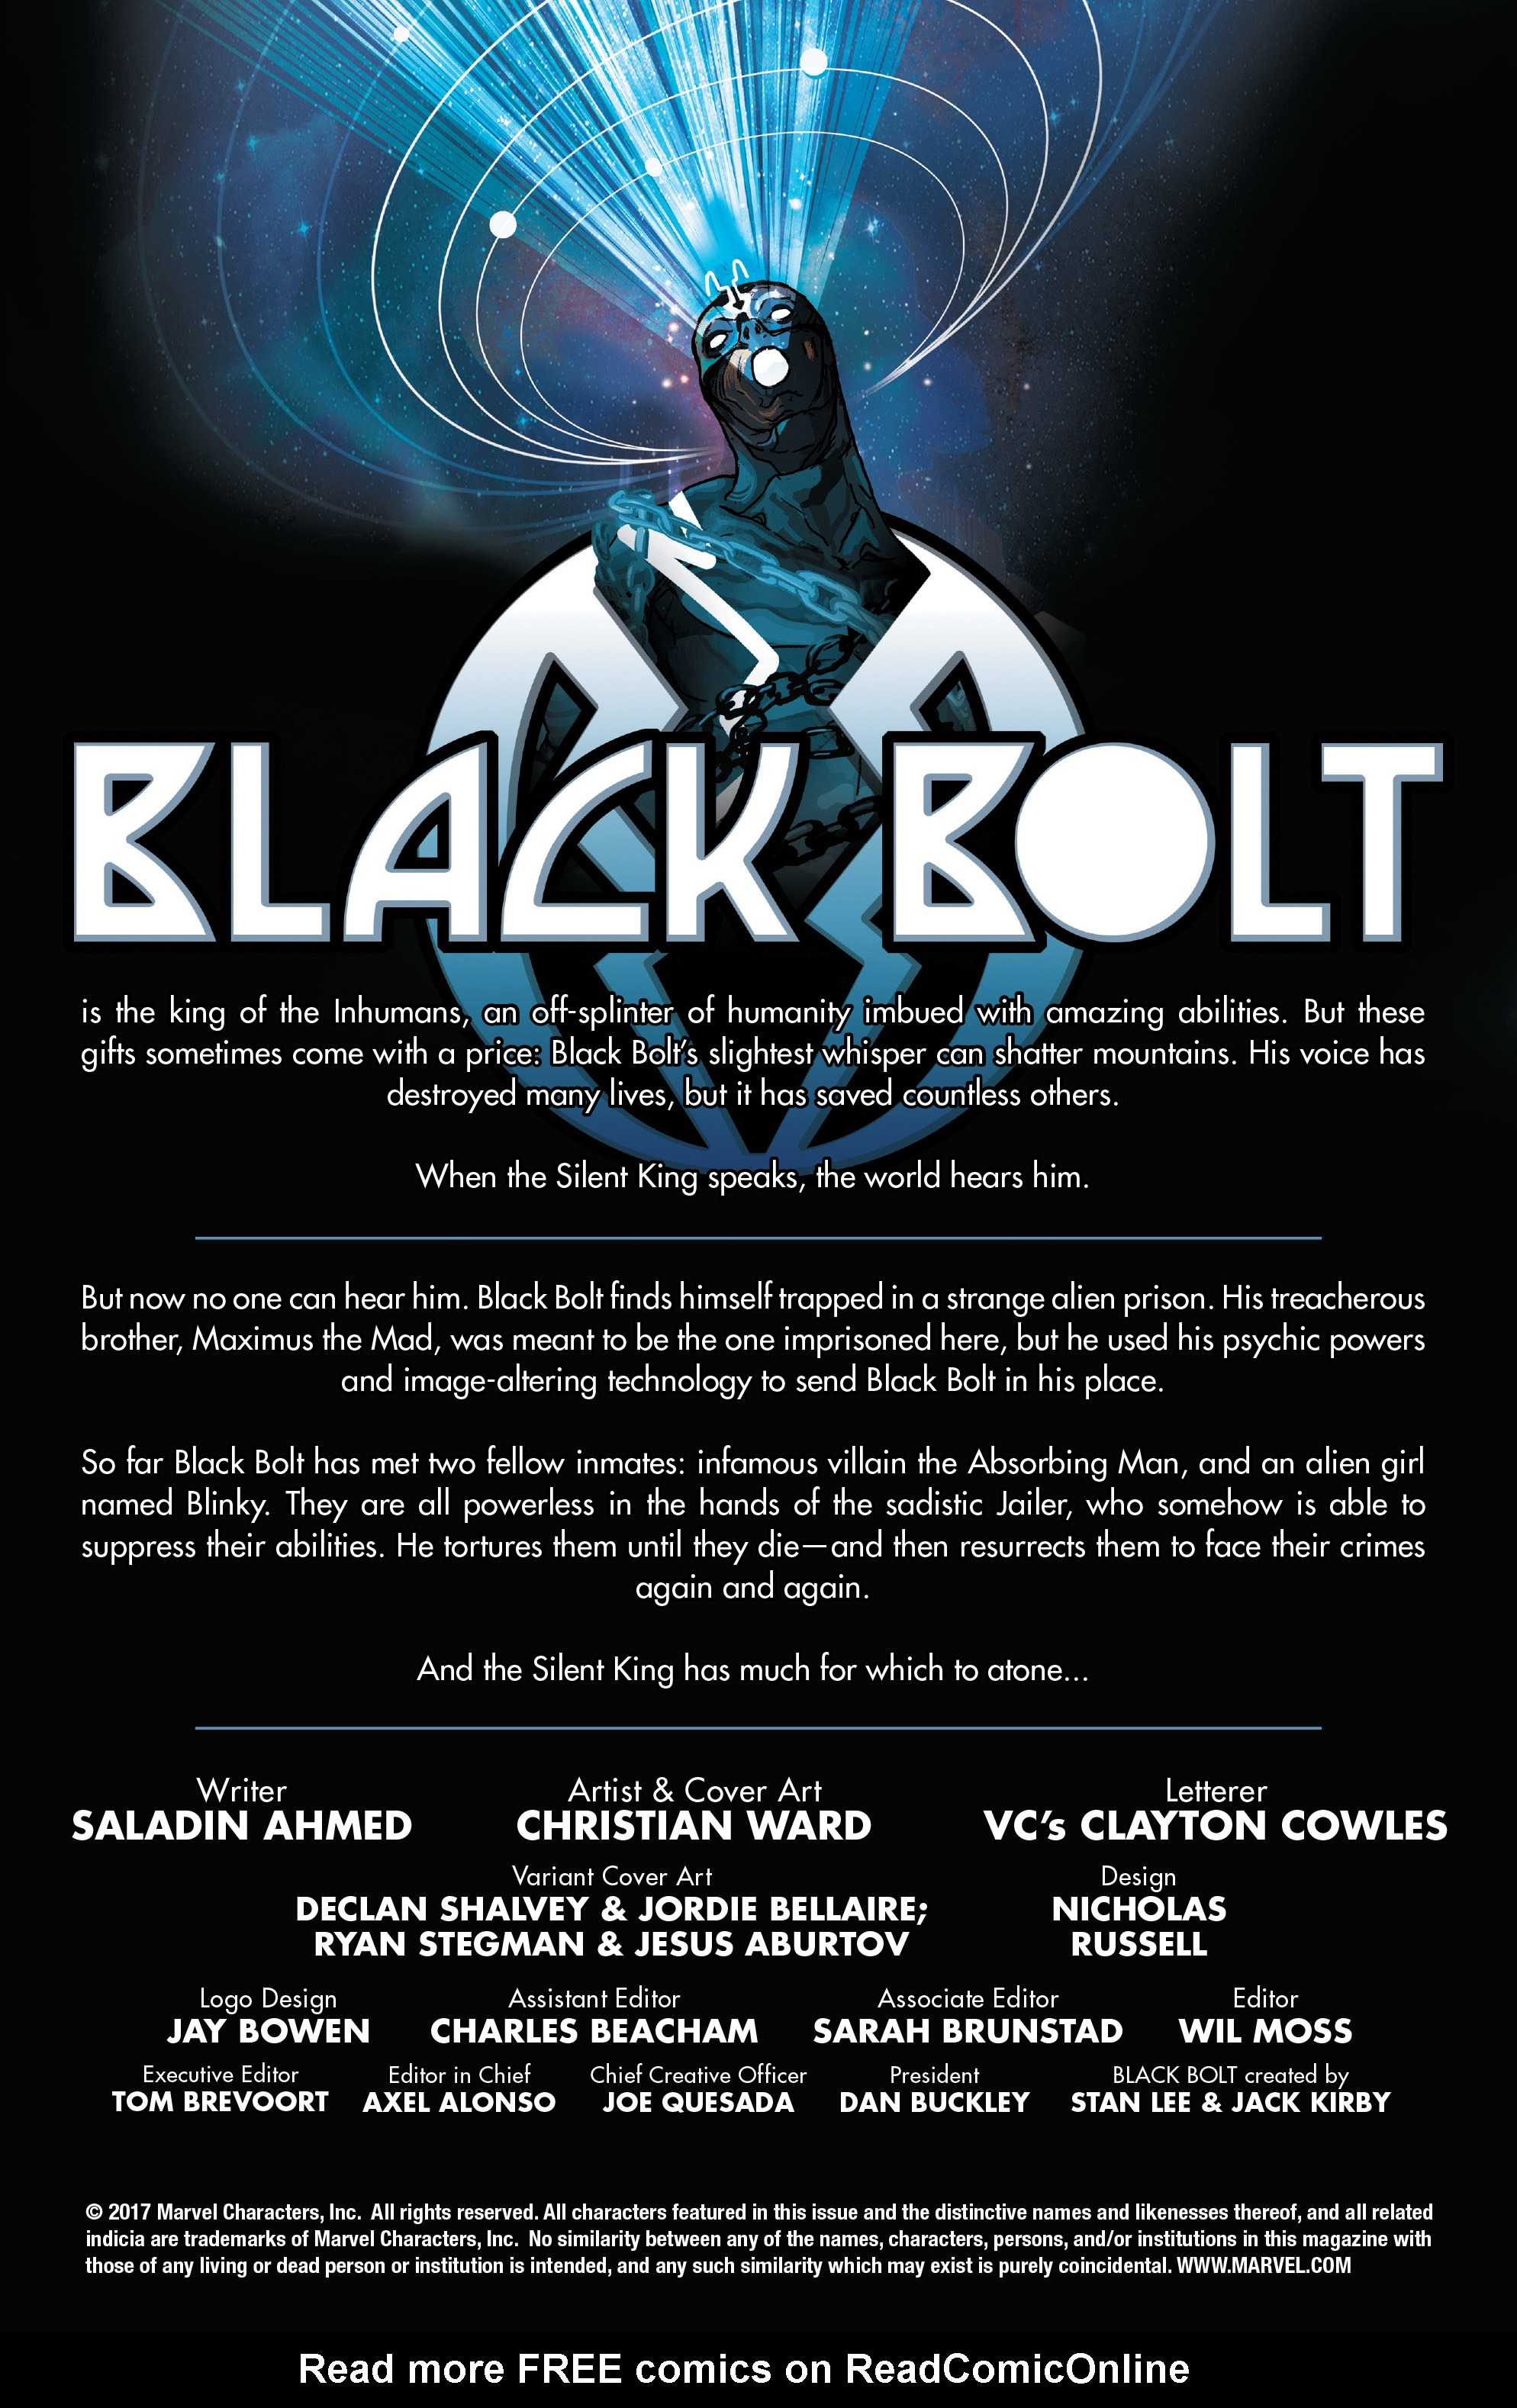 Read online Black Bolt comic -  Issue #2 - 2